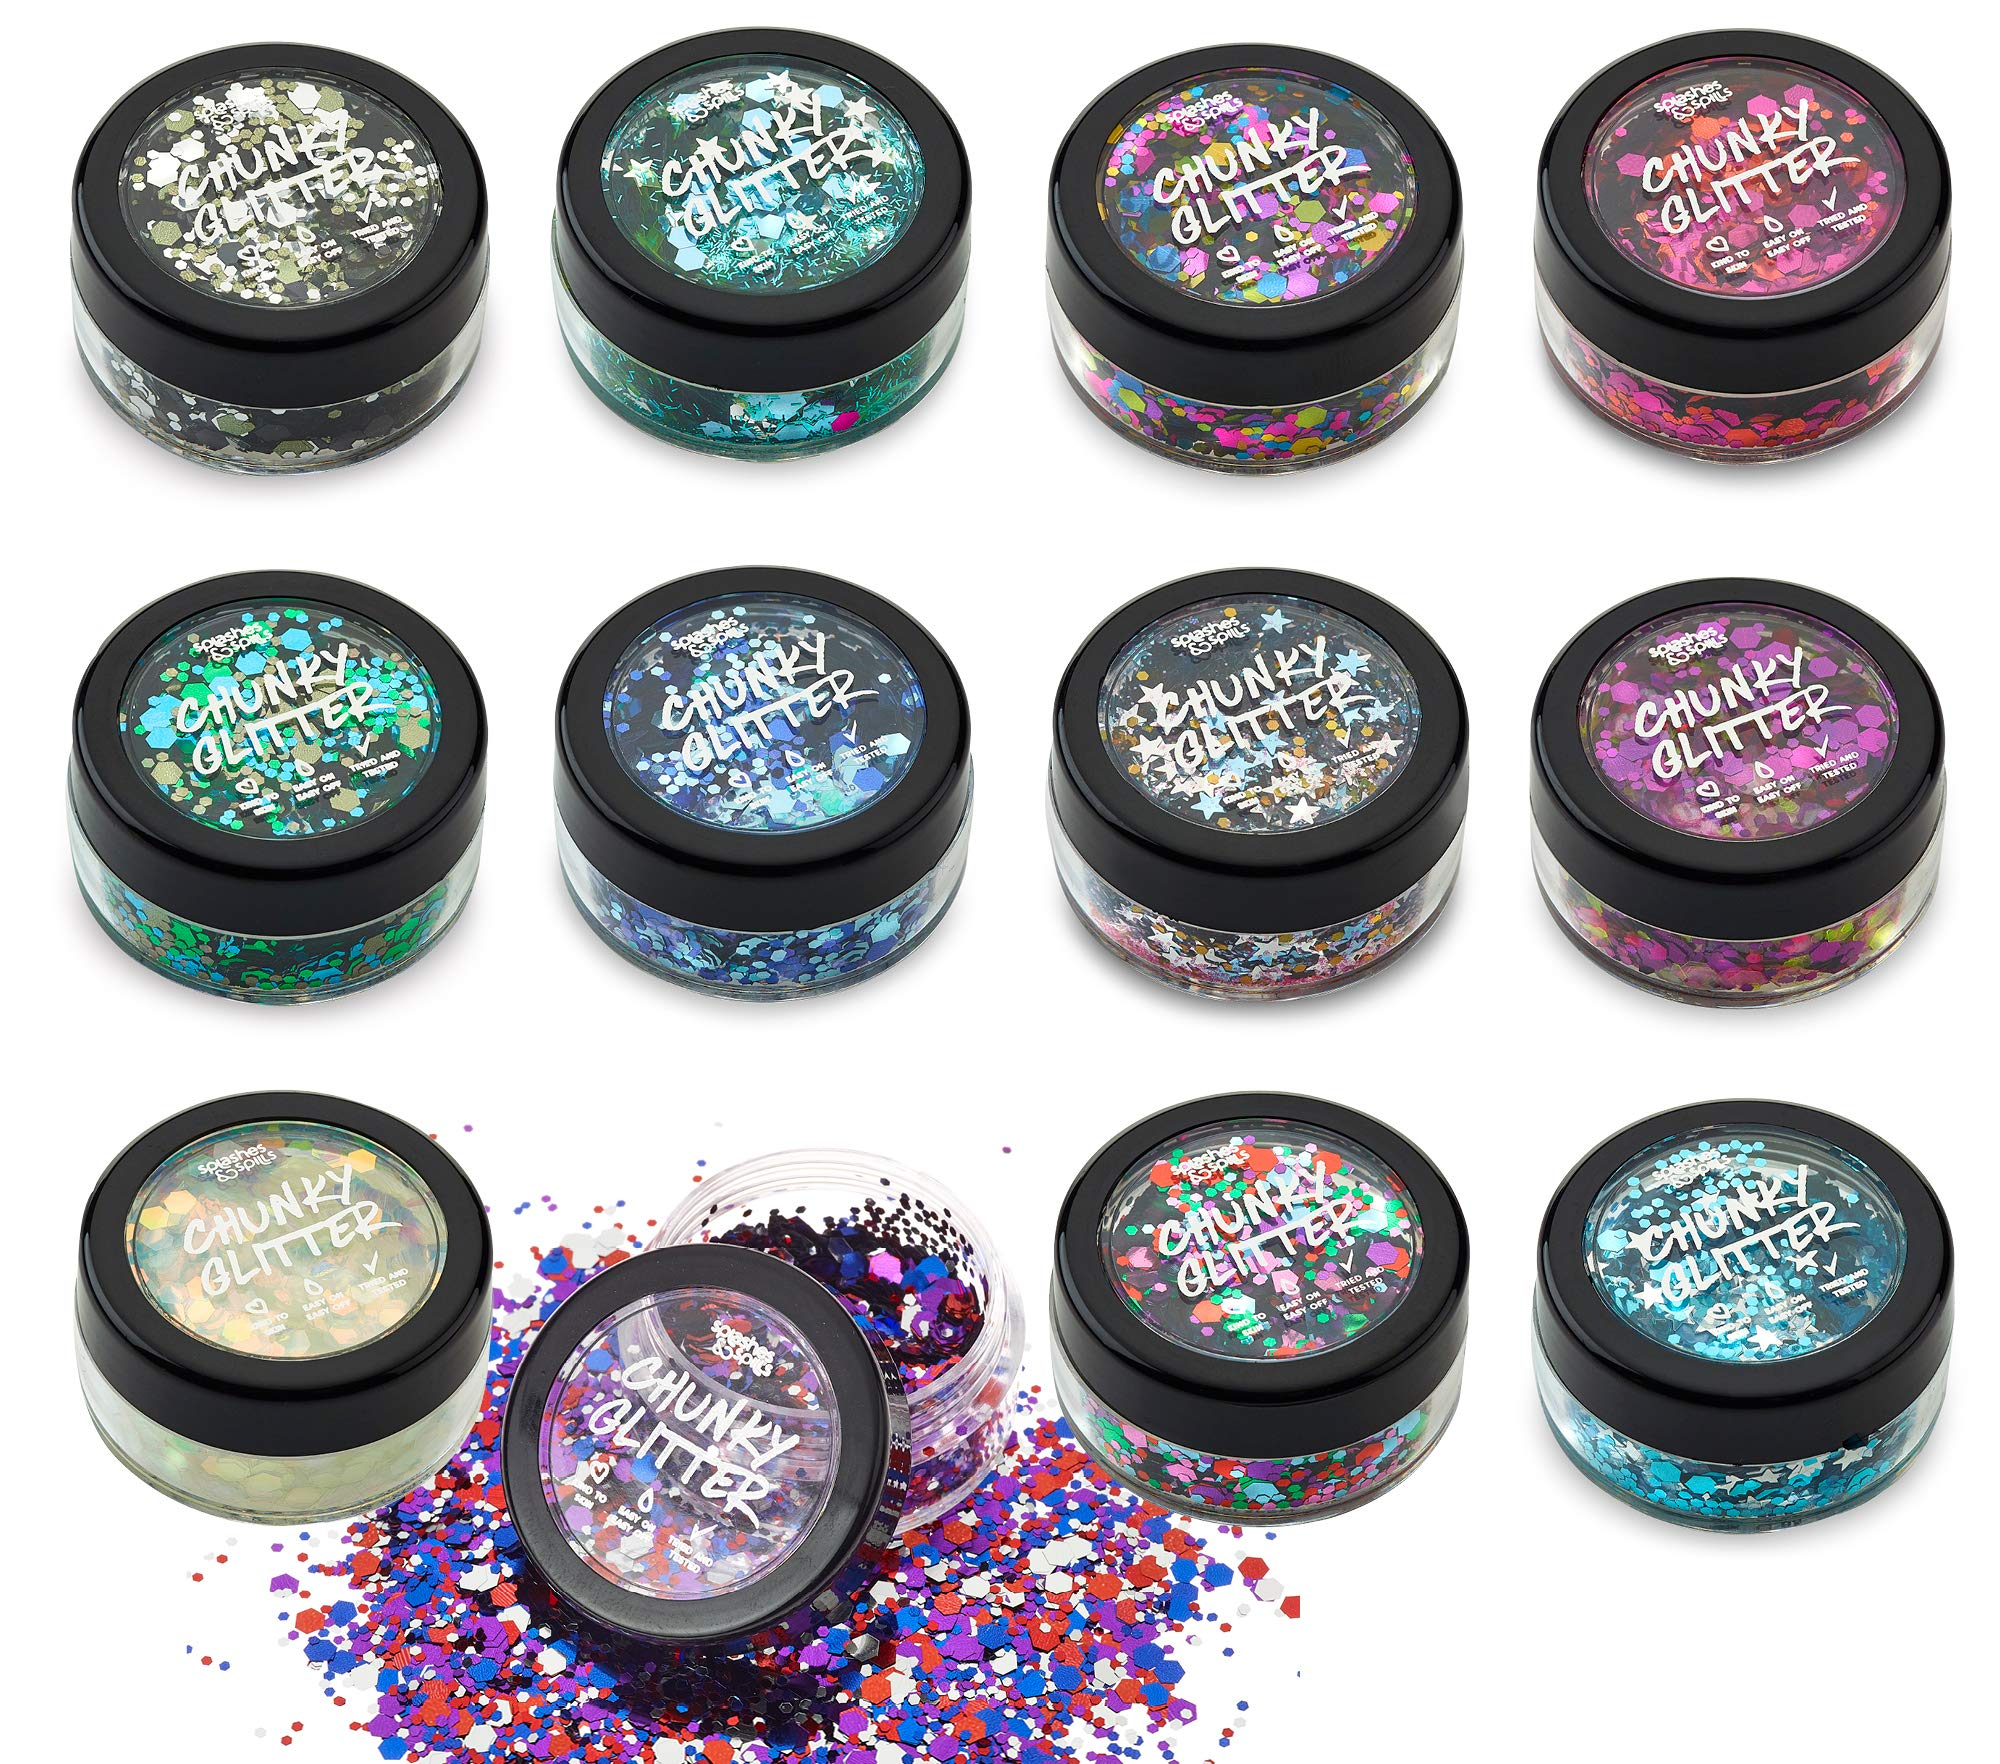 Regular Chunky Loose Glitter - 5g Containers 12 Color Set with 10ml Fixer Gel for Face, Body, Hair - Great Shimmer Effect for Festival, Concert, Halloween Costume, Party - by Splashes and Spills